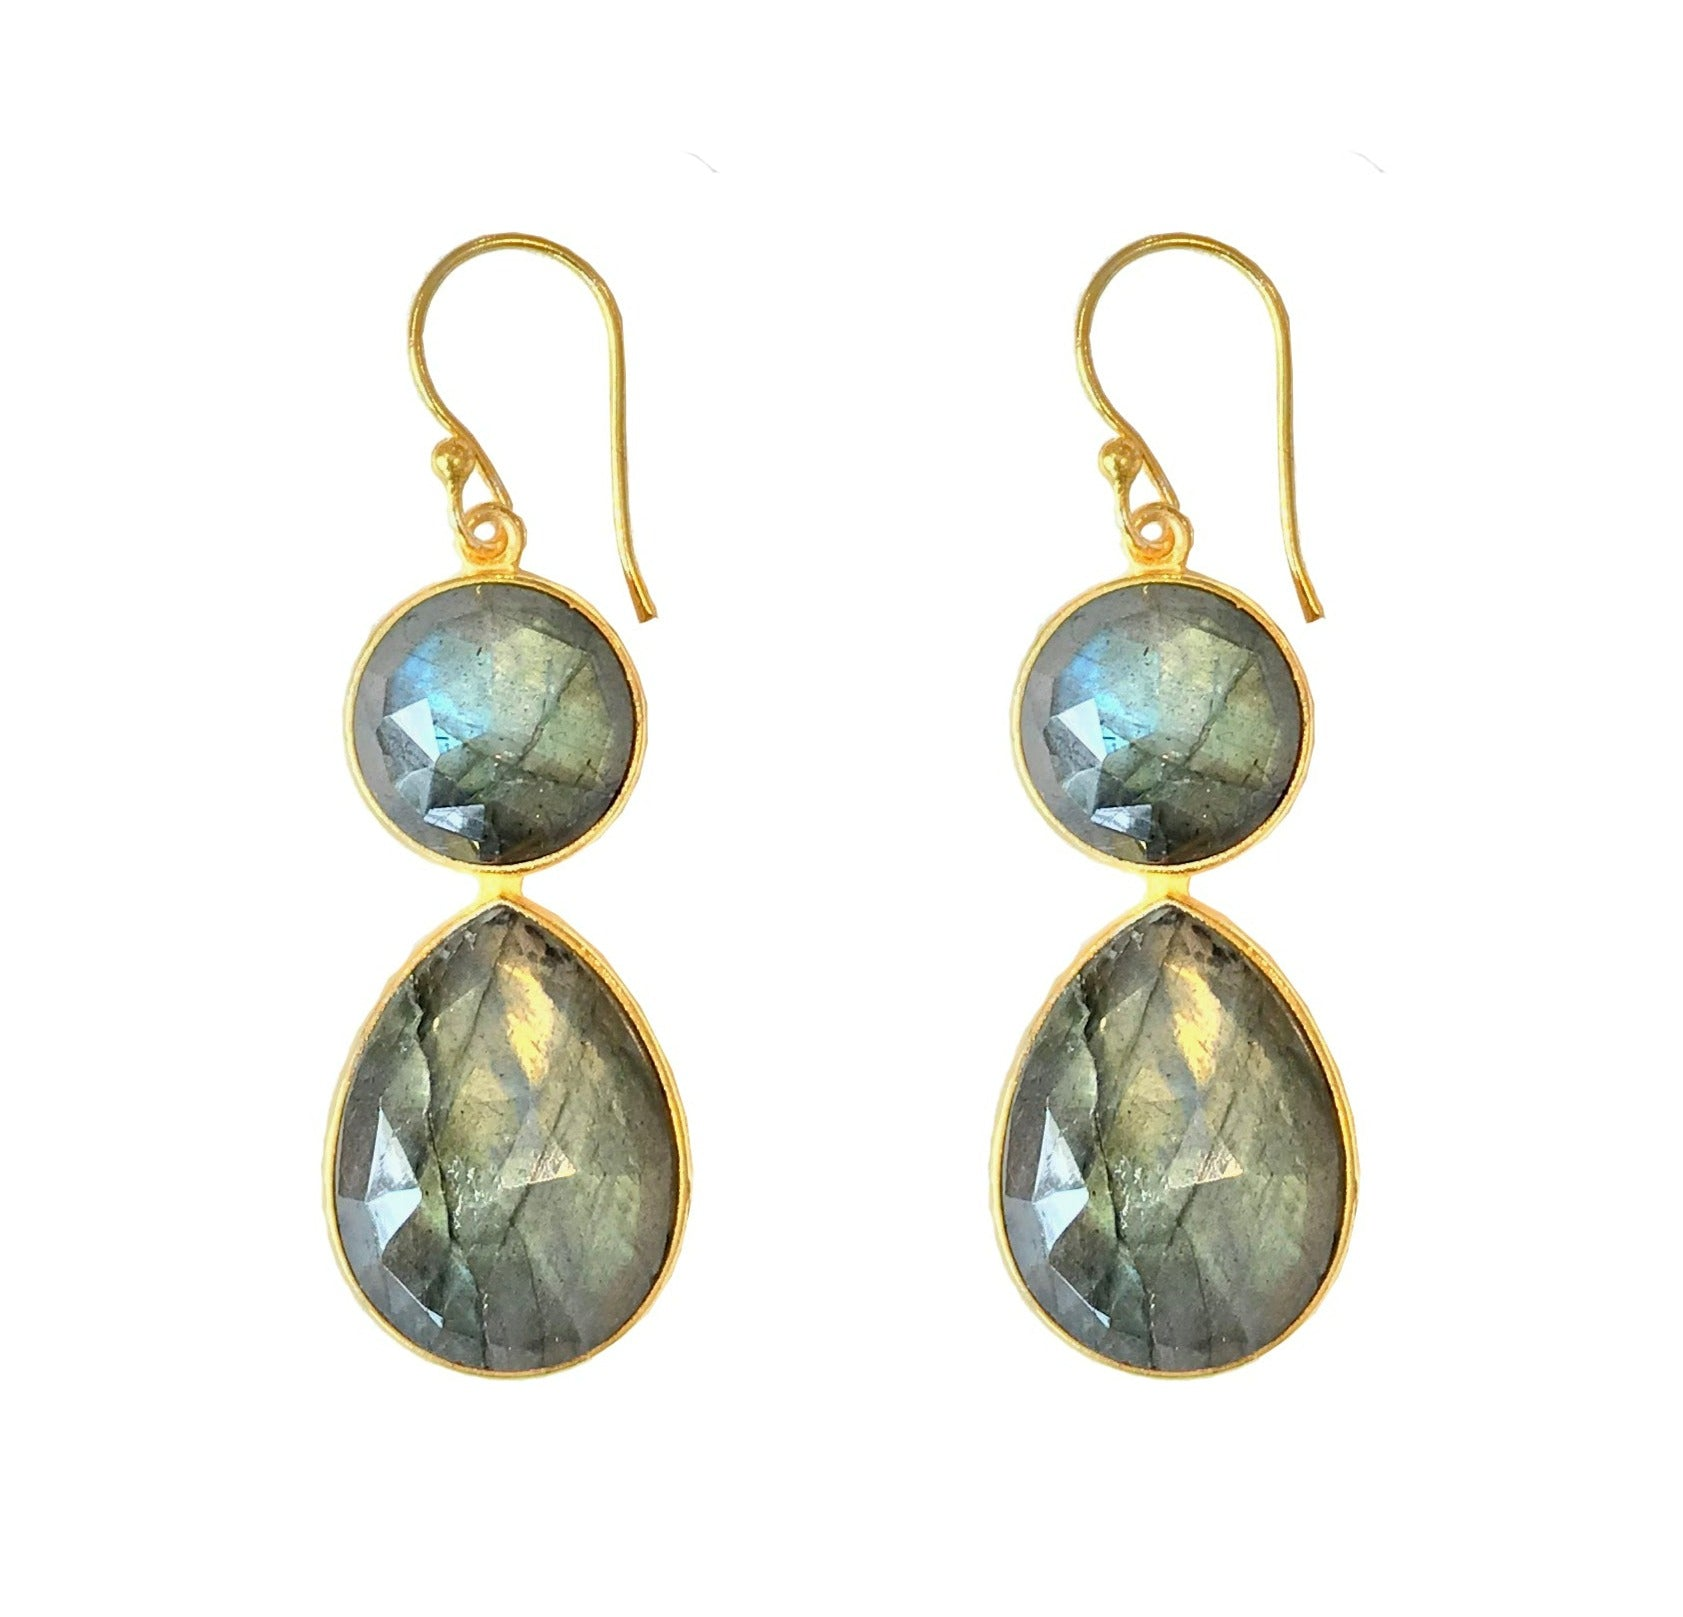 Kayden Earrings in Labradorite